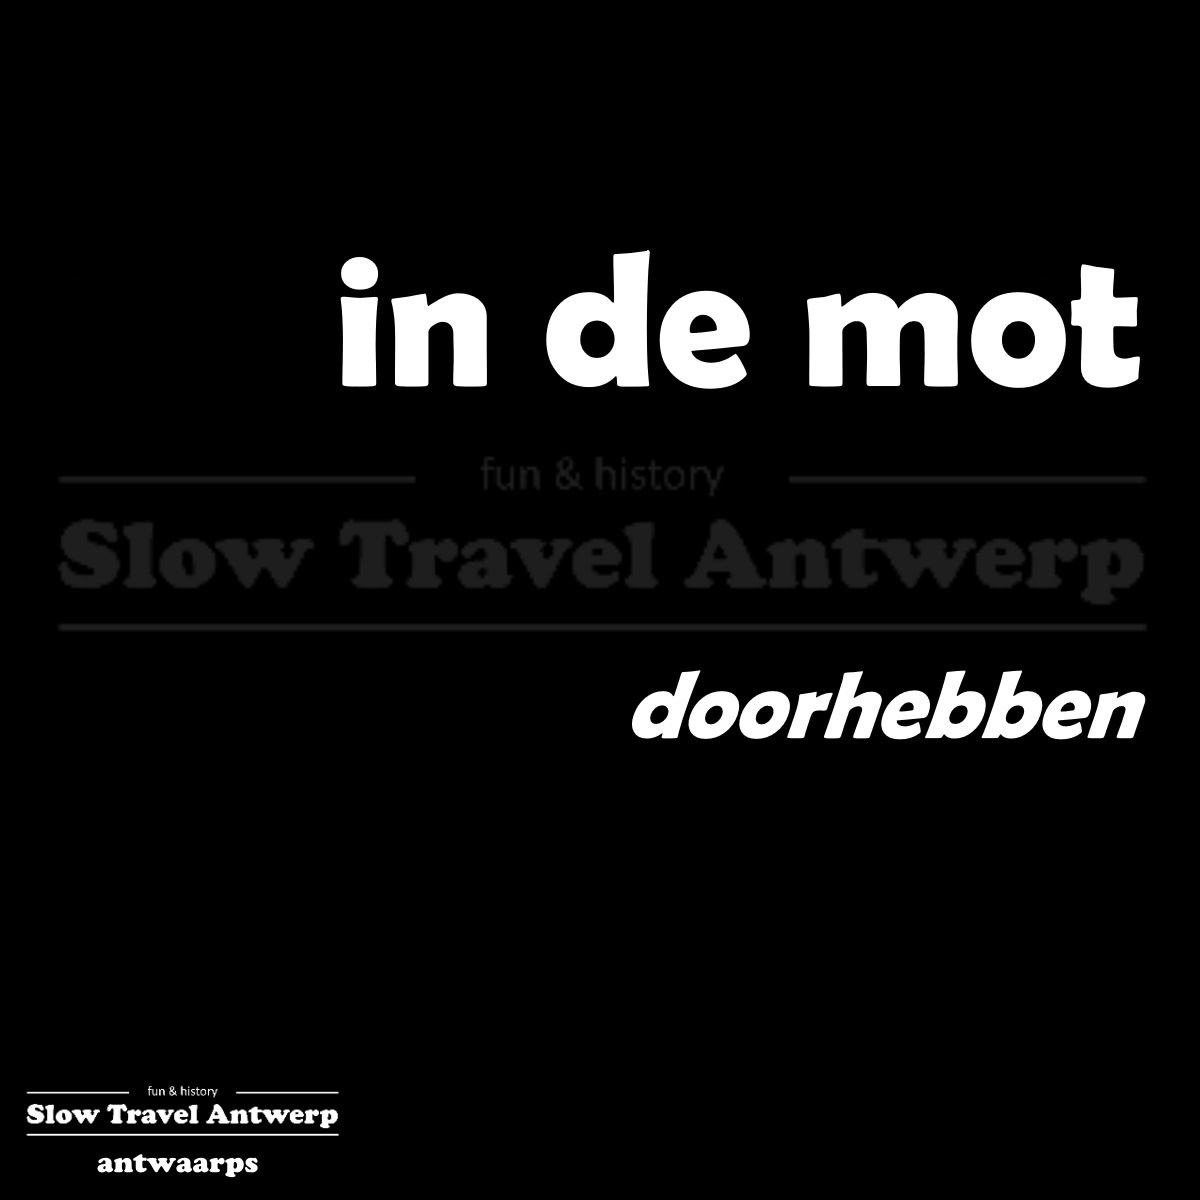 in de mot – doorhebben – to notice